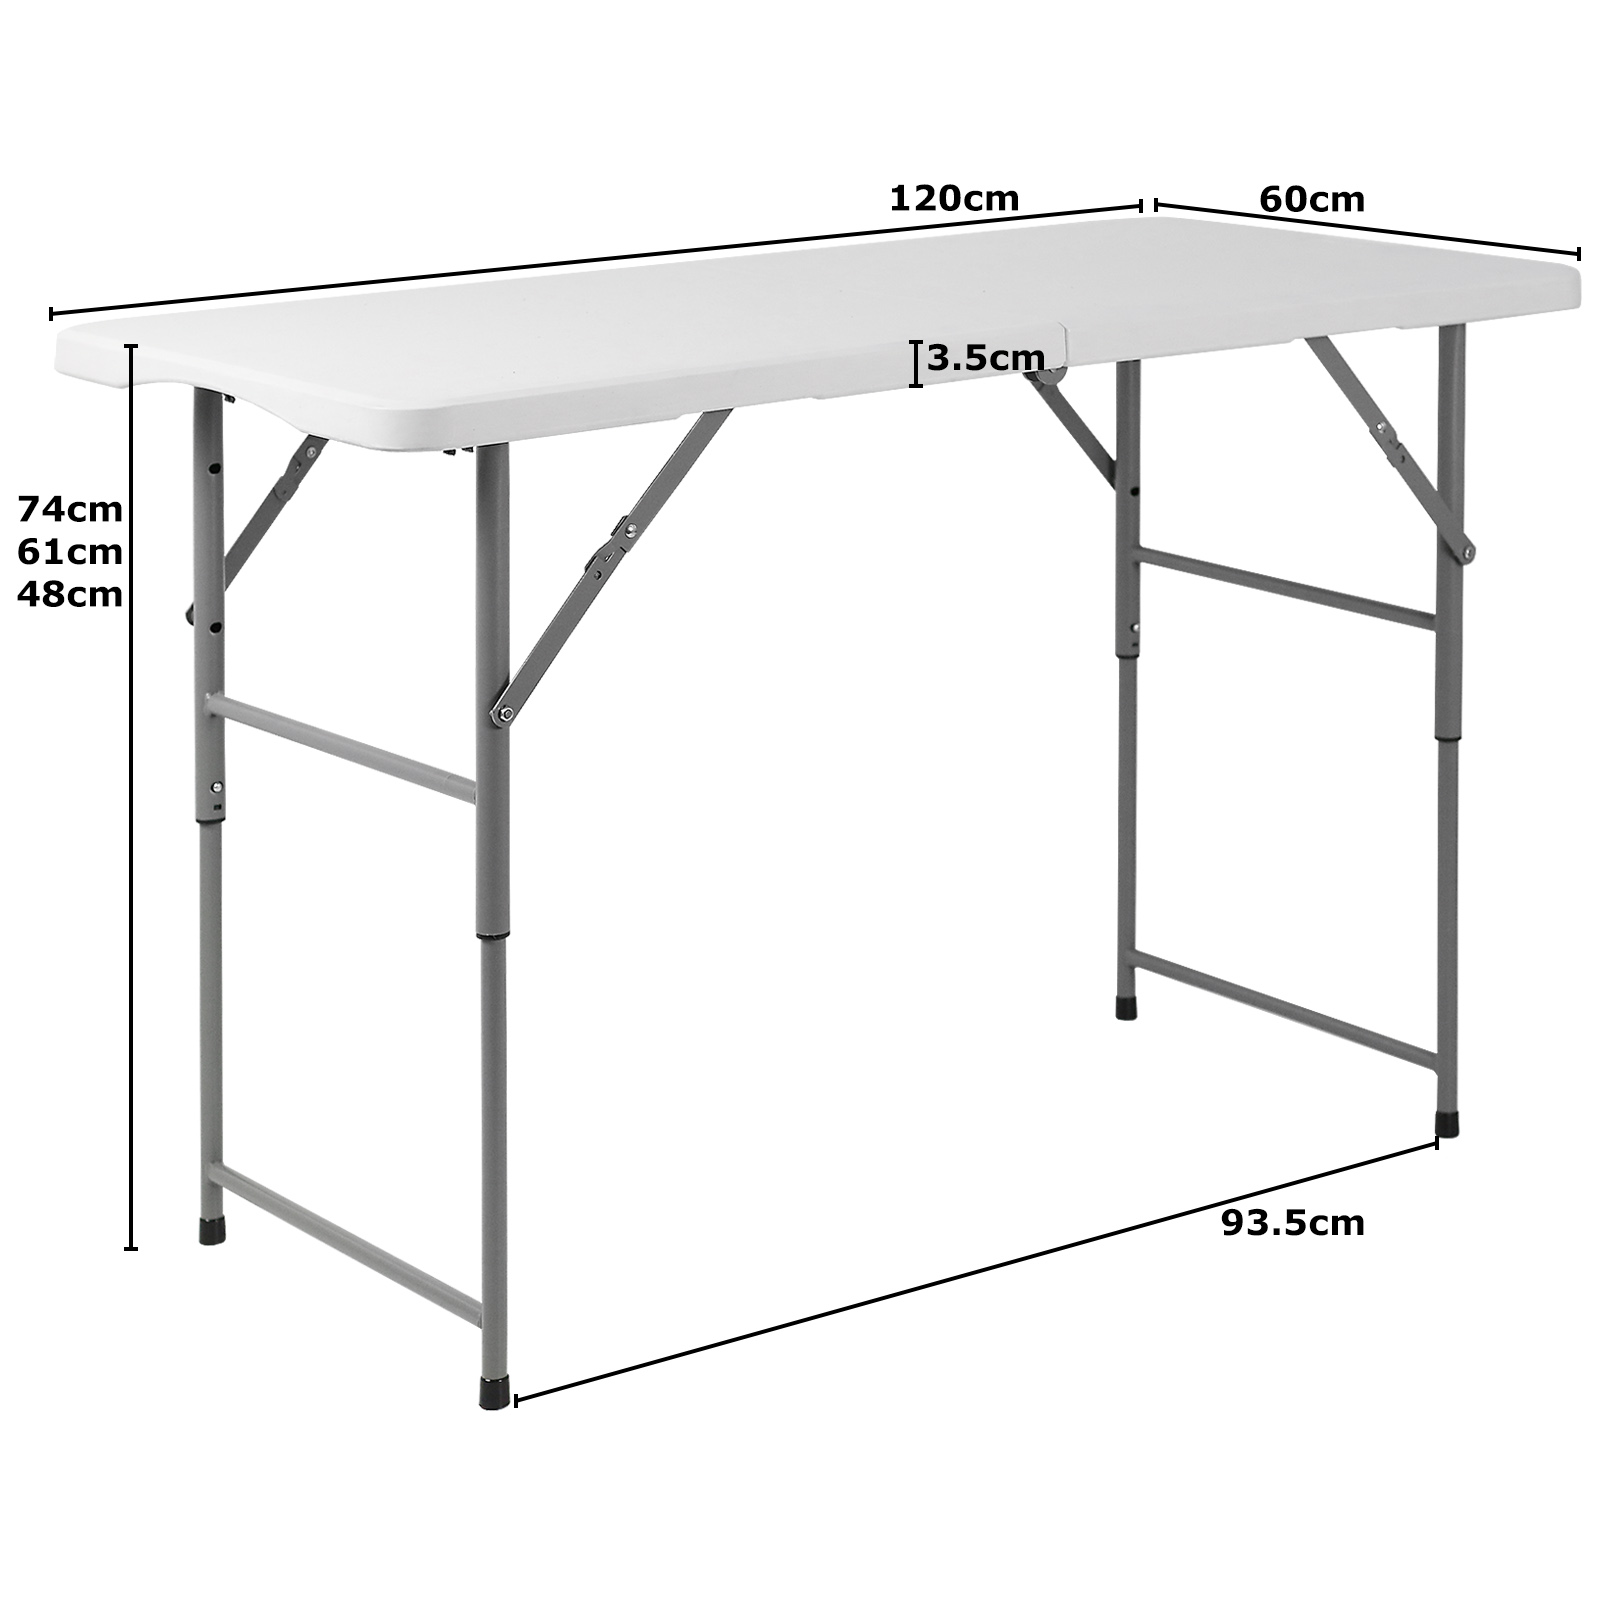 4ft folding banquet trestle table buffet wedding garden street party in out door ebay. Black Bedroom Furniture Sets. Home Design Ideas